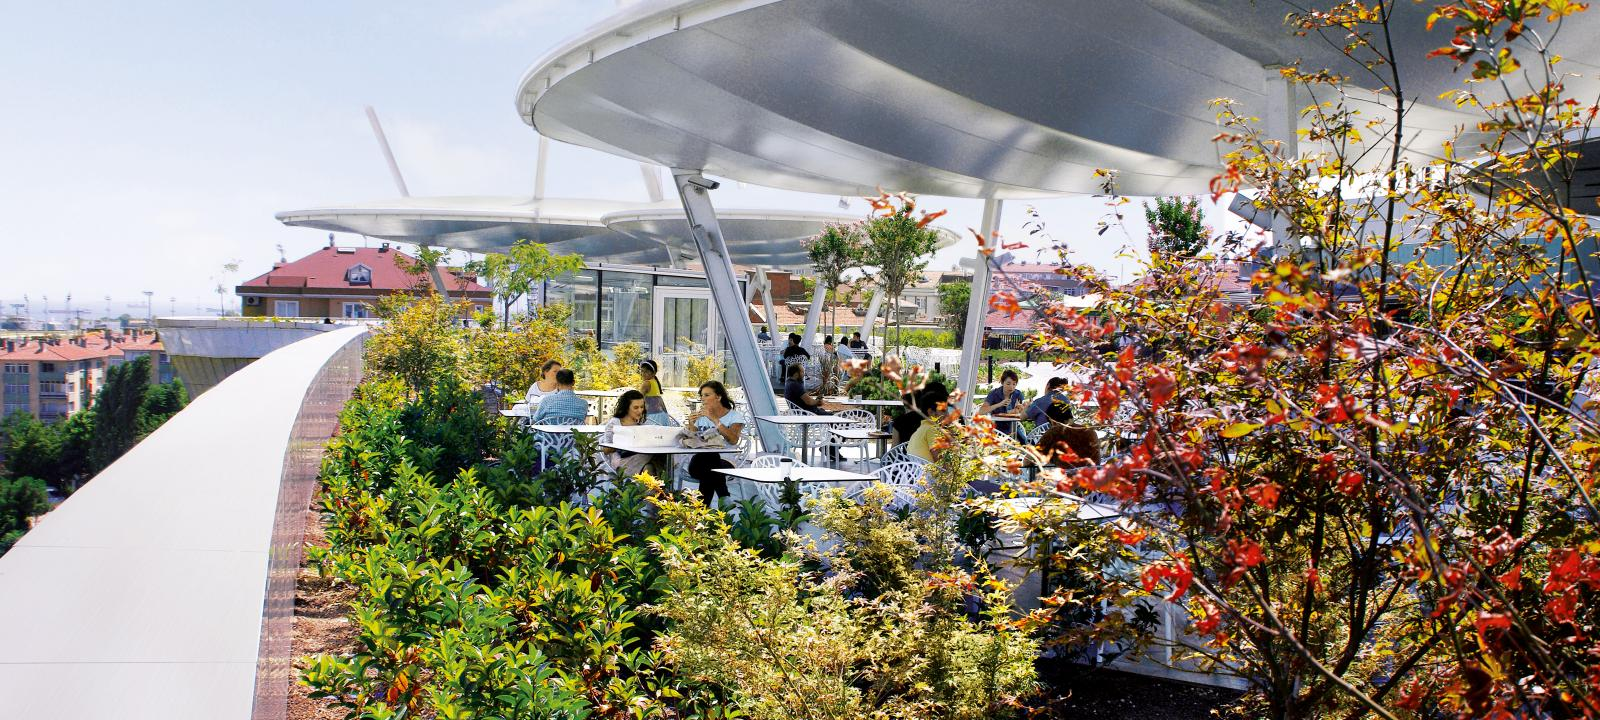 Roof garden with a cafe